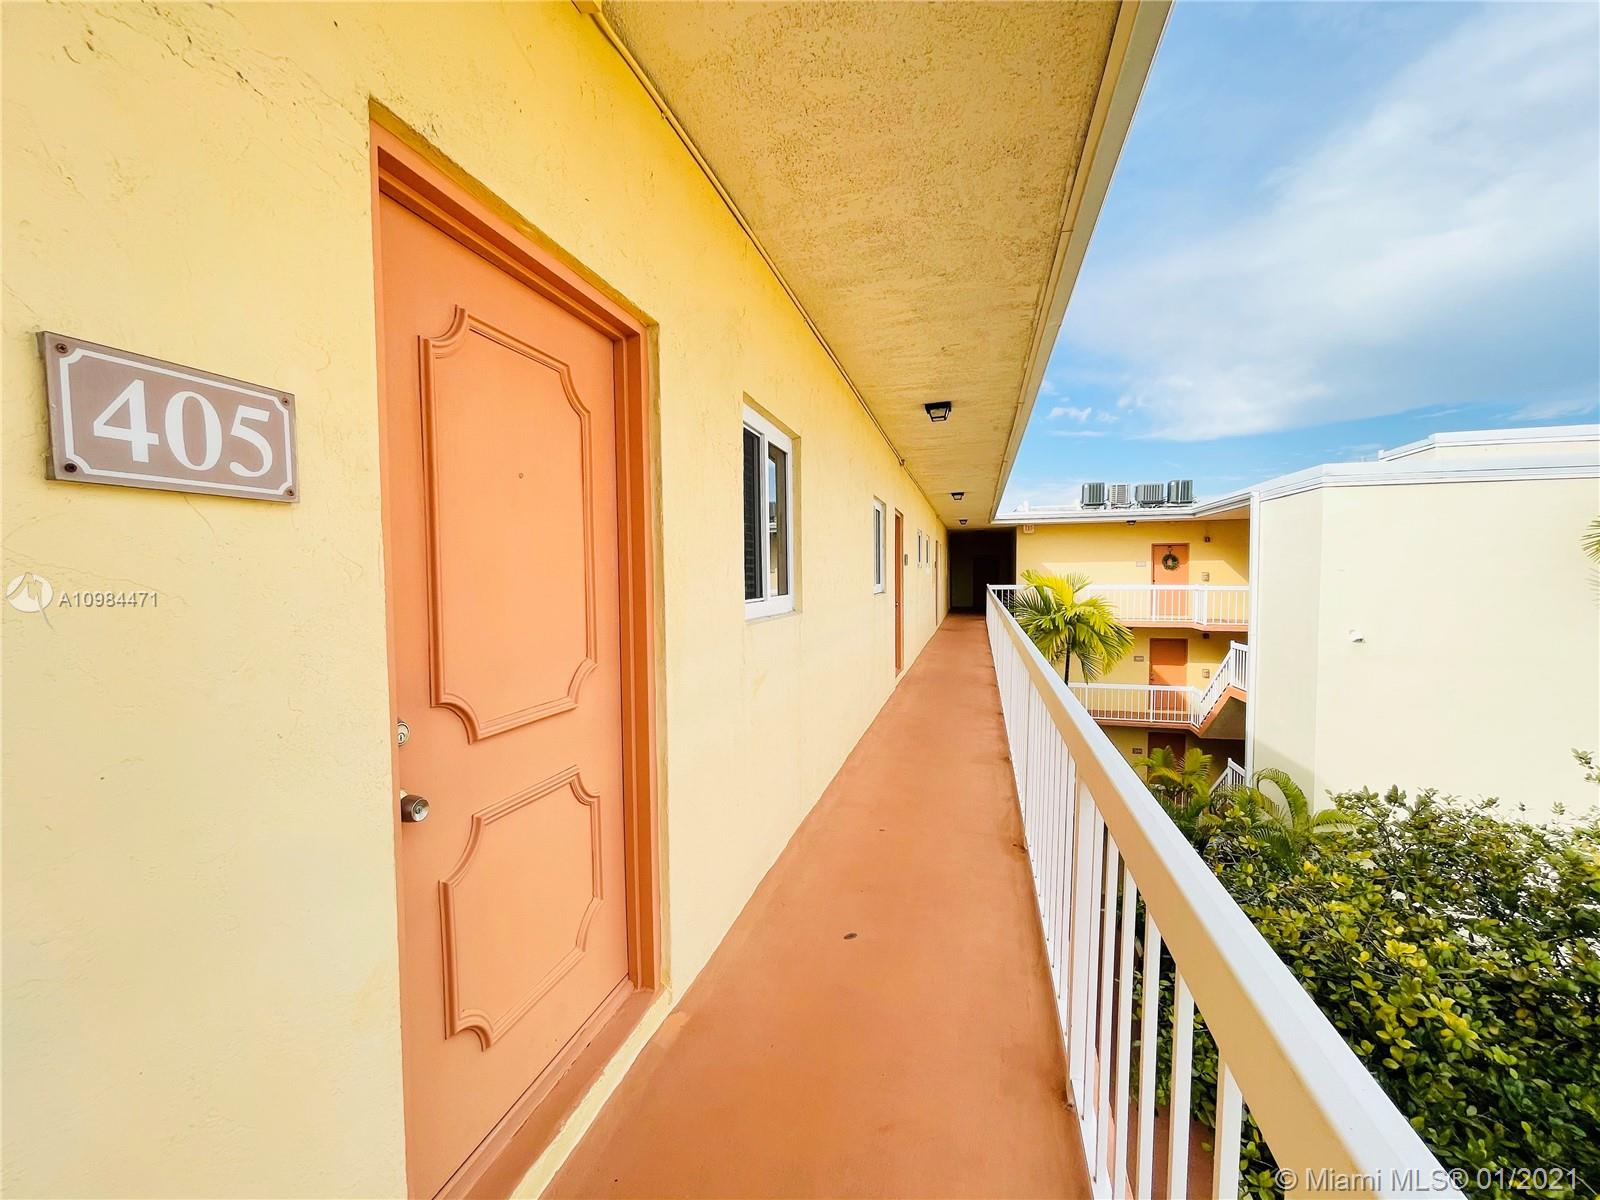 1/1 Condo unit in desirable Village of Kings Creek. Centrally located close to Dadeland Mall, Metro-rail, Baptist Hospital, UM, restaurants and more. Easy access to major highways US-1, 874, 869, Palmetto 826, and Turnpike. The unit is in very well maintained condition. Title and laminated wood floors. Hurricane Impact Windows. Storm Shutters. Plenty of closet space in the hall and there are his and hers closets in spacious bedroom. Enjoy all amenities the community offers: 3 pools, gym, laundry machines on each floor, bbq areas, basketball and tennis courts, for a super low HOA fee. Don't miss this opportunity. Vacant & Easy to Show.